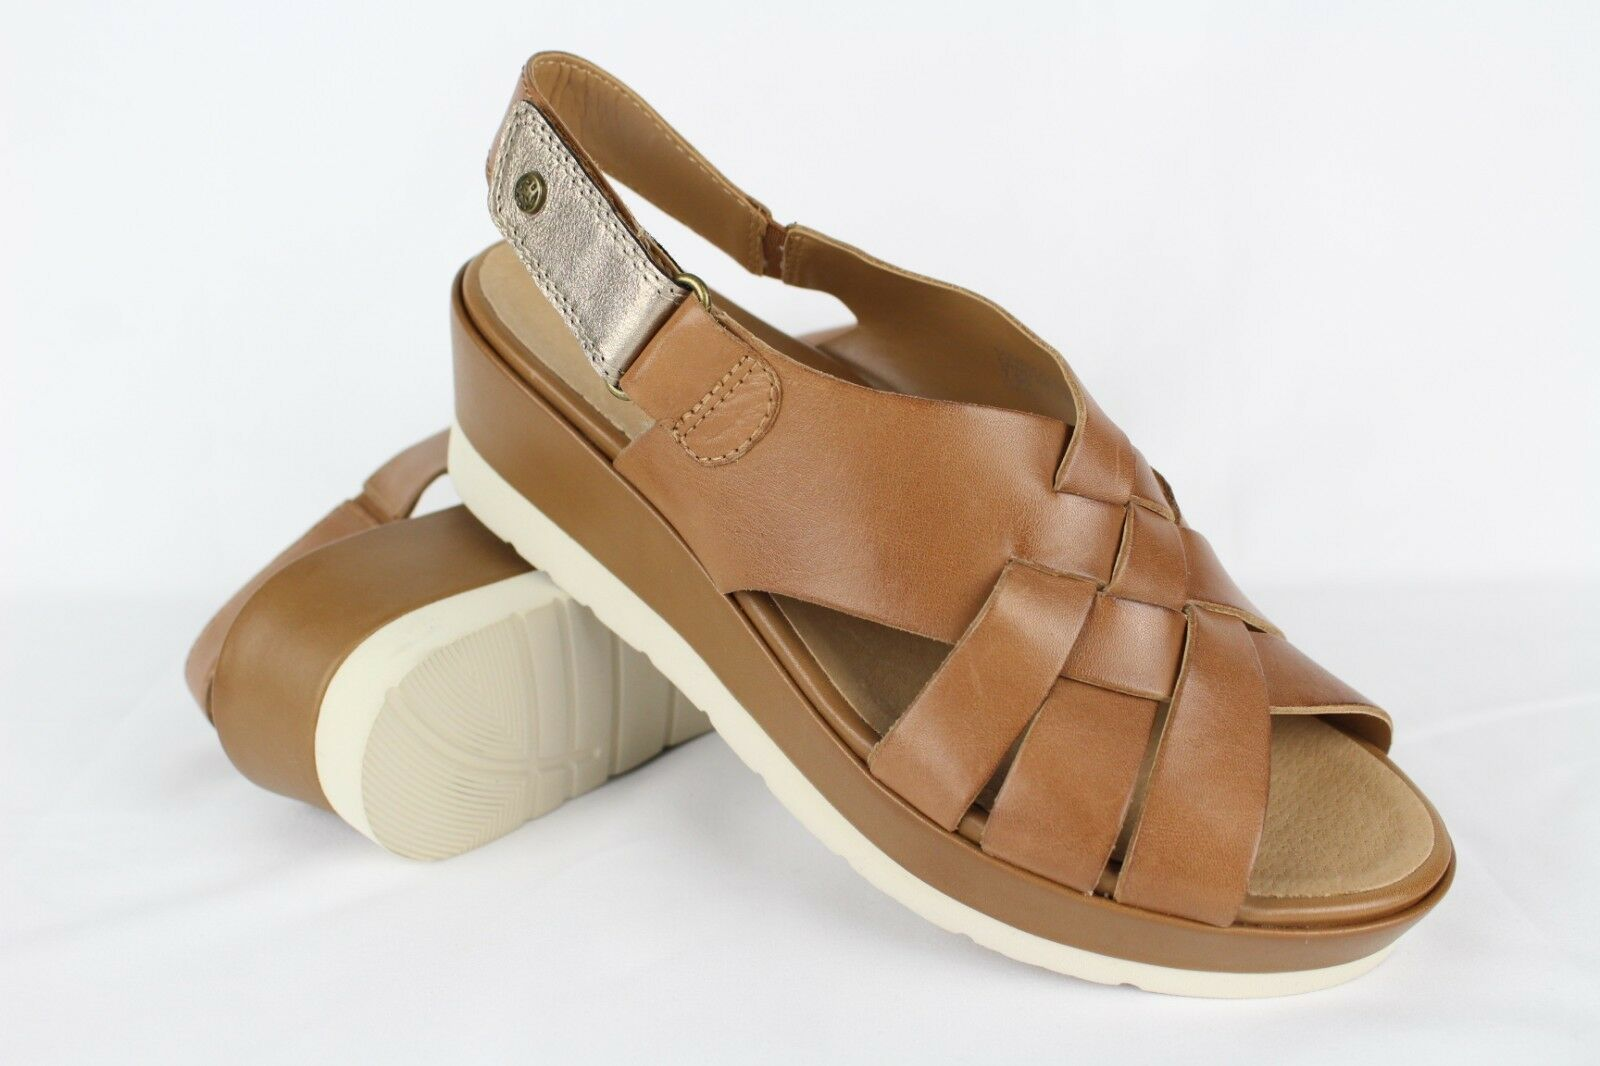 Earth Women's Sunflower Woven Leather Sandals Size 7.5B Sand Brown